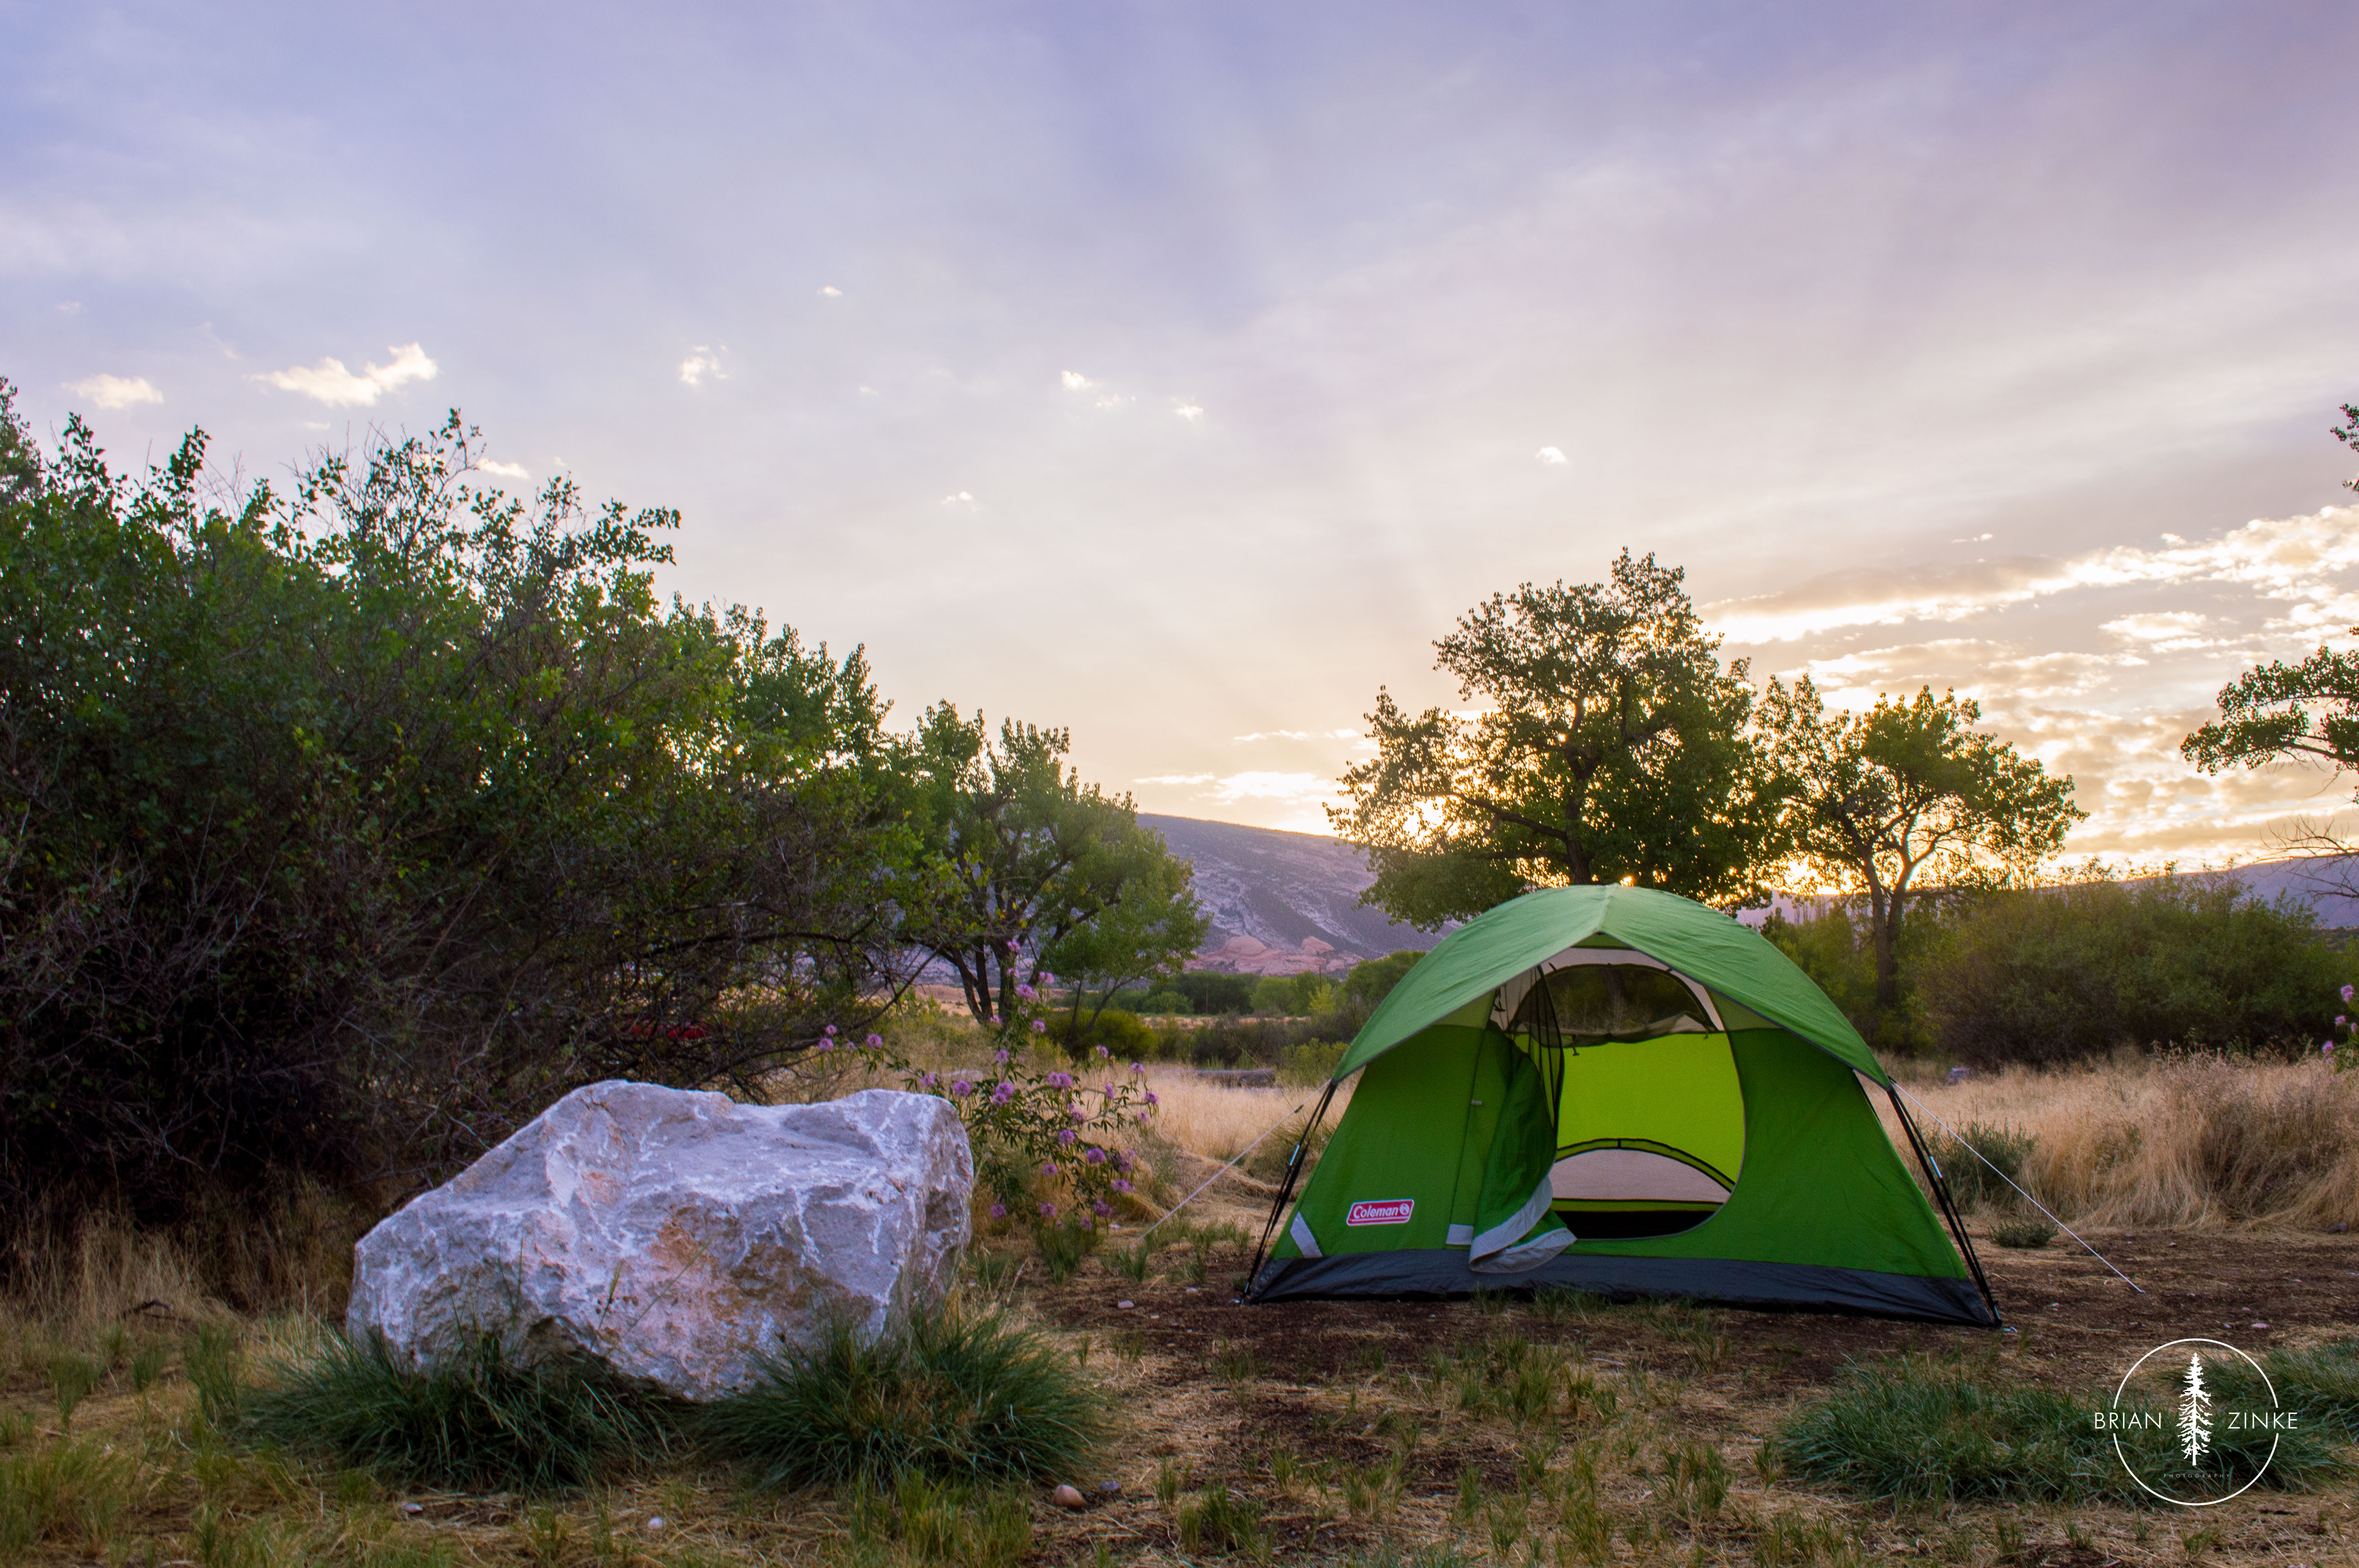 Green River campground, Dinosaur National Monument, Vernal, Utah